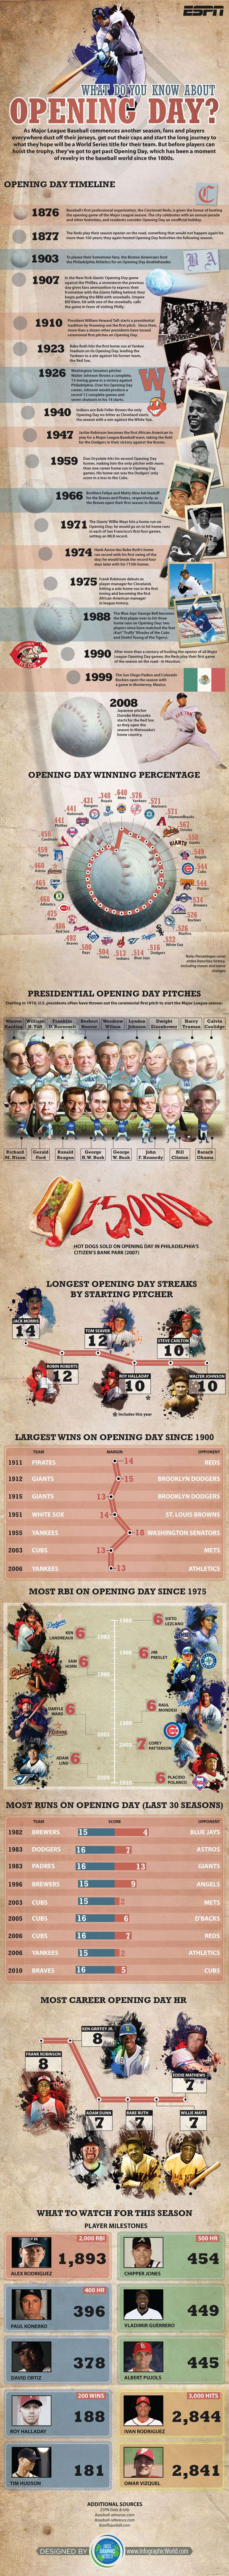 This is not solely Braves related, but its still awesome.  Happy 2012 Opening Day!